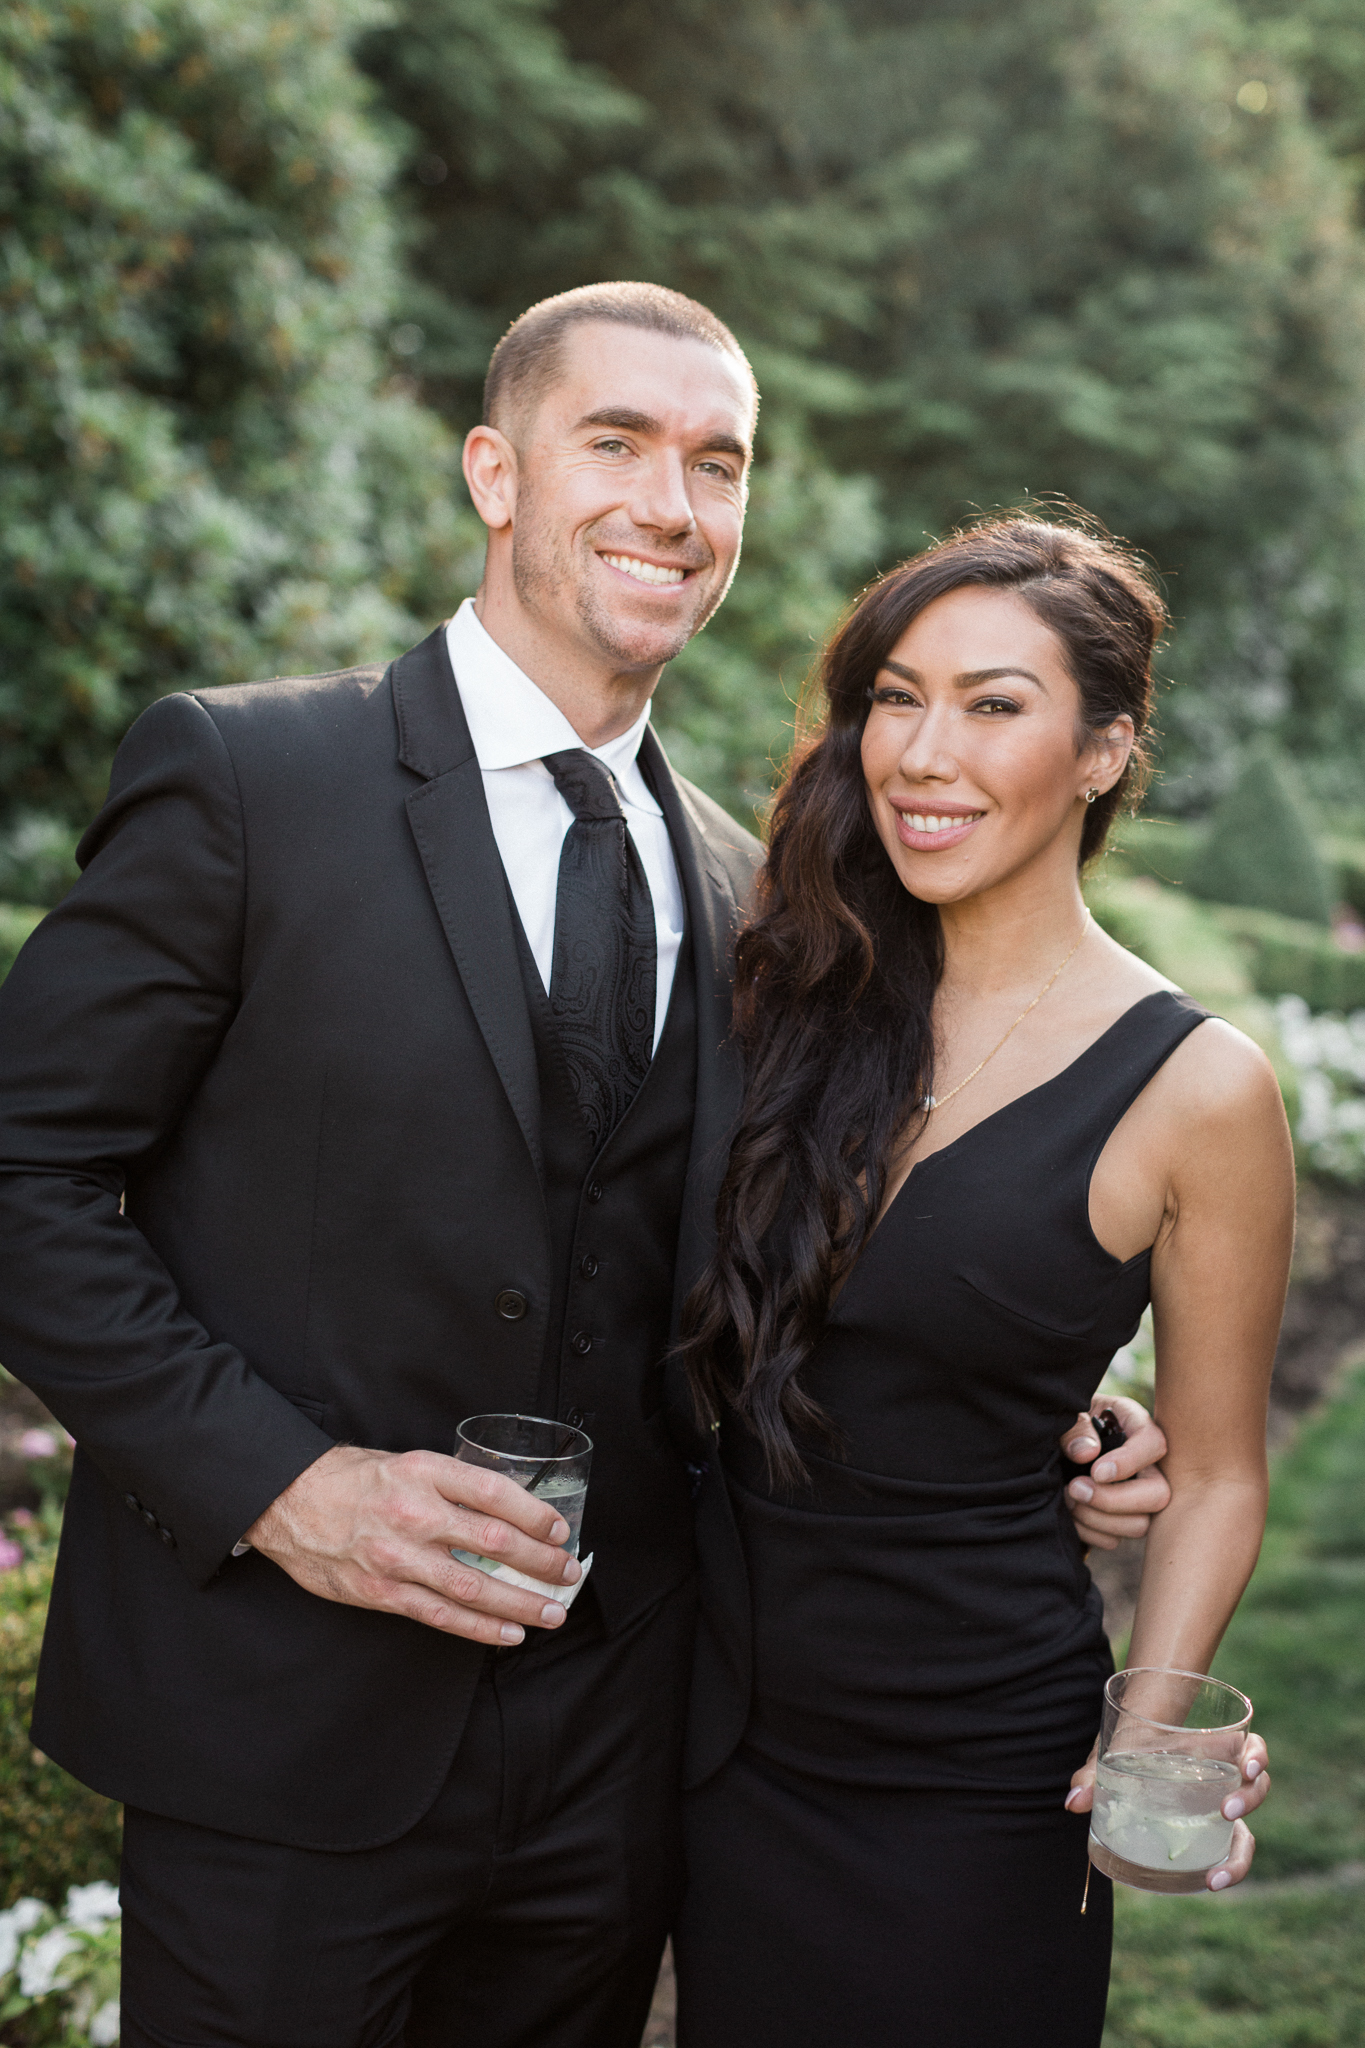 160OutliveCreative_Travel_Photographer_Videographer_Lewis&Clark_Oregon_Elegant_BlackTie_Destination_Wedding.jpg